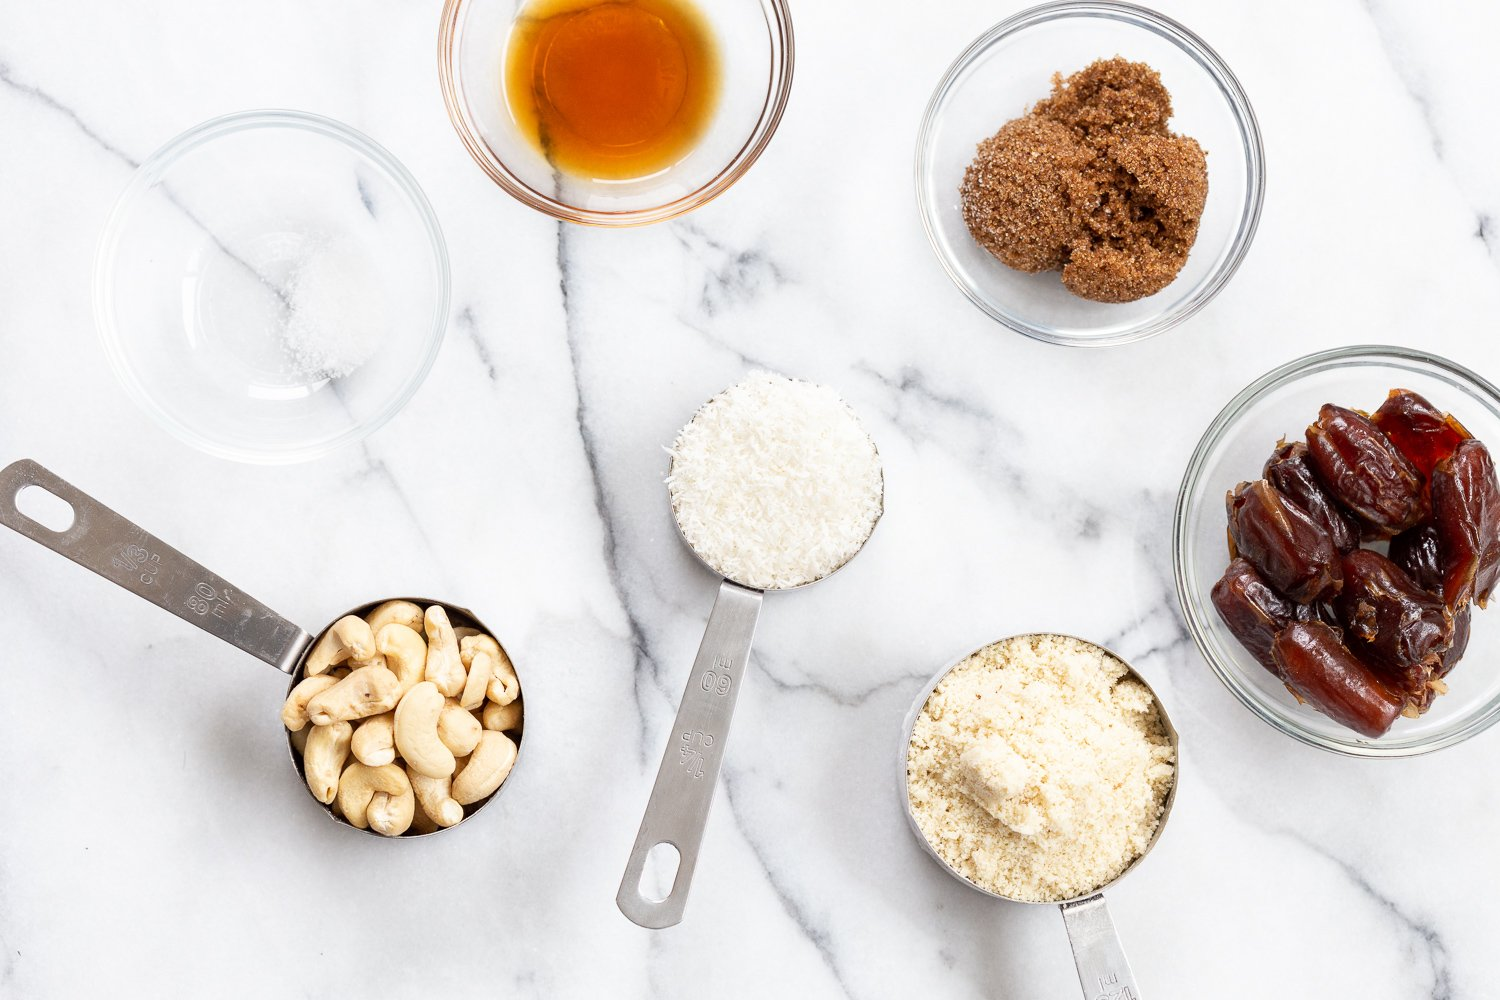 Ingredients for our Vegan Cookie Dough Bites in bowls and measuring cups